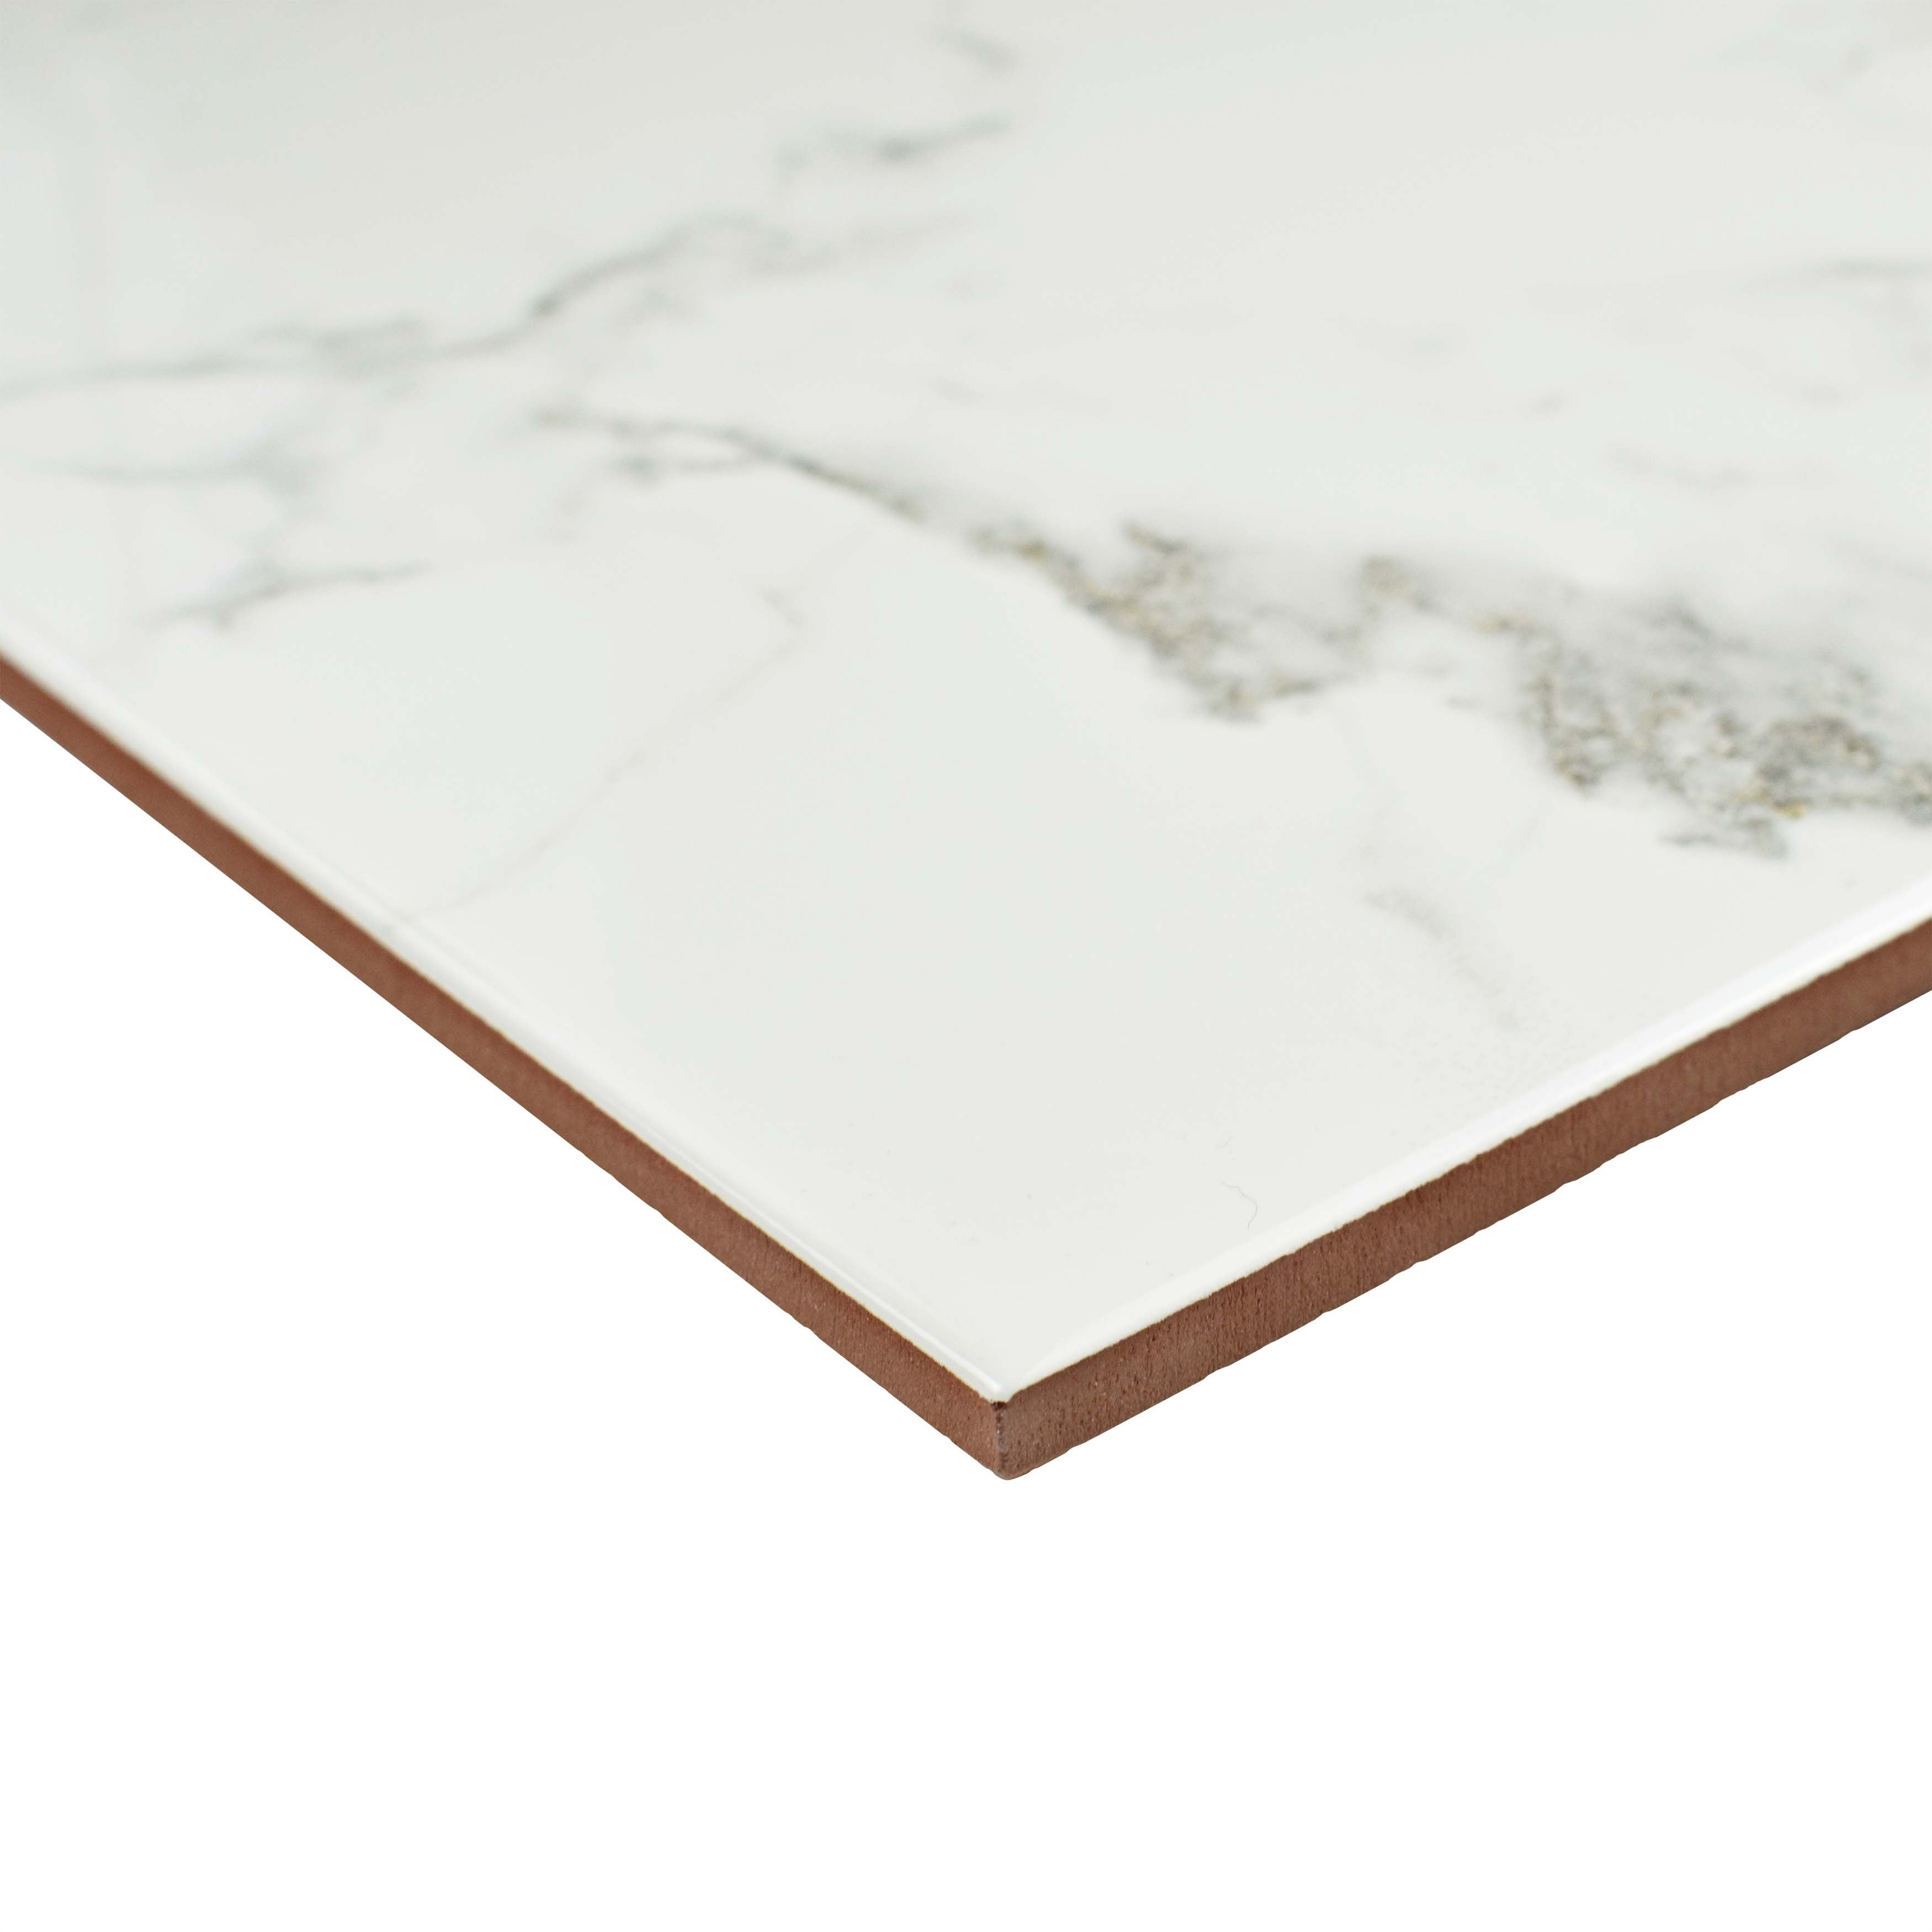 Somertile 18x18 inch classic calacatta ceramic floor and wall tile somertile 18x18 inch classic calacatta ceramic floor and wall tile case of 5 free shipping today overstock 16931157 dailygadgetfo Gallery